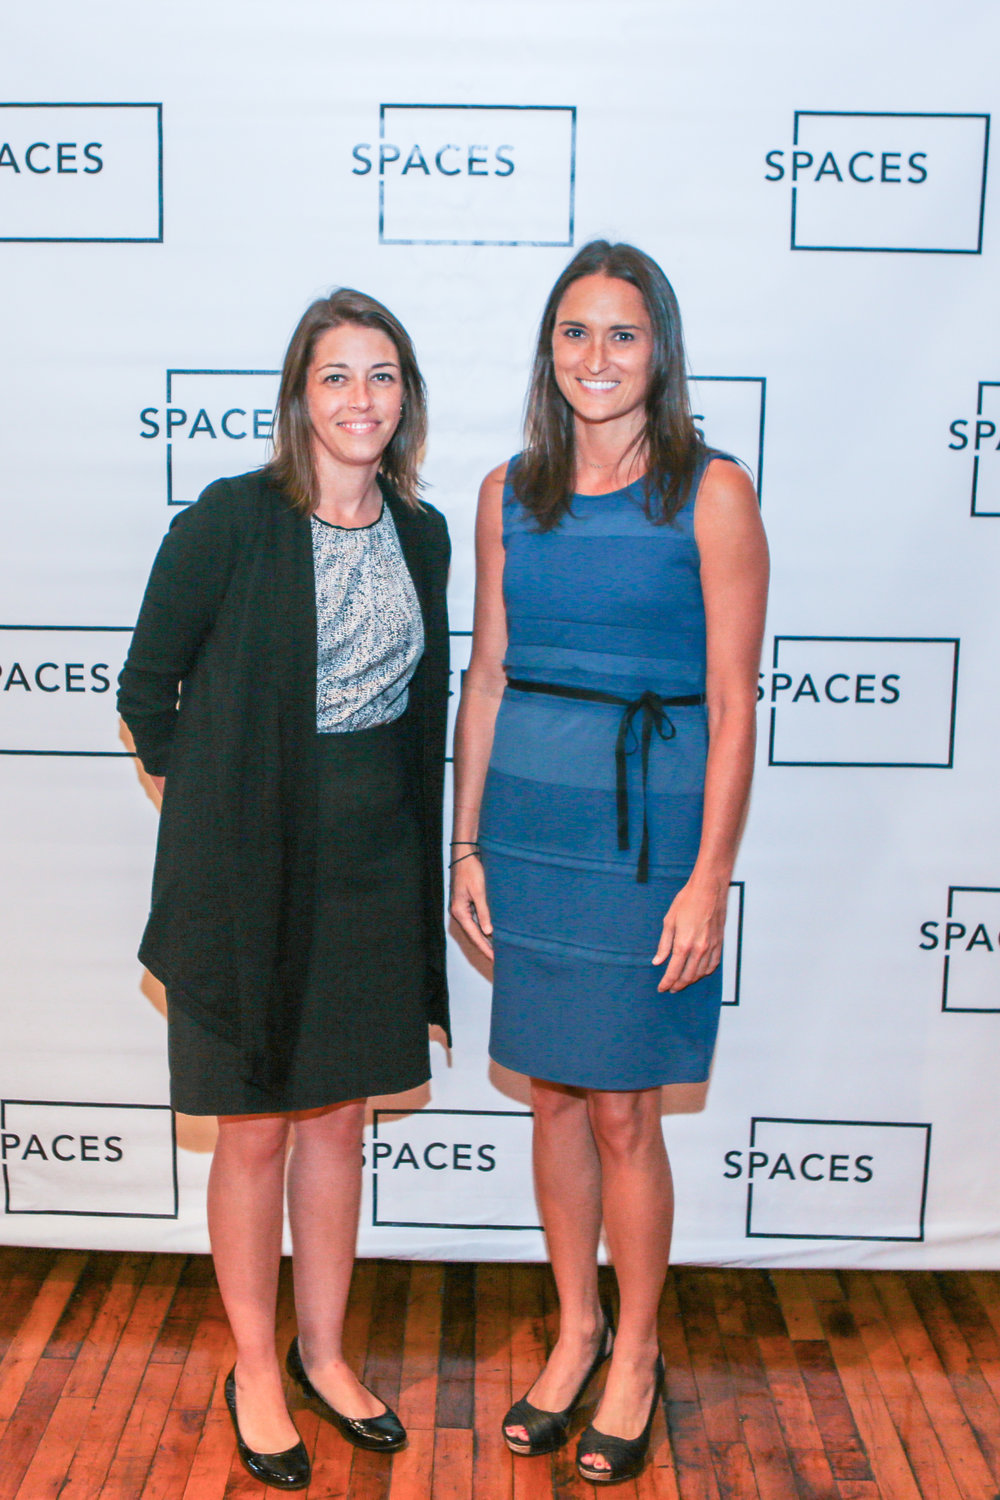 Spaces Event-1022.jpg